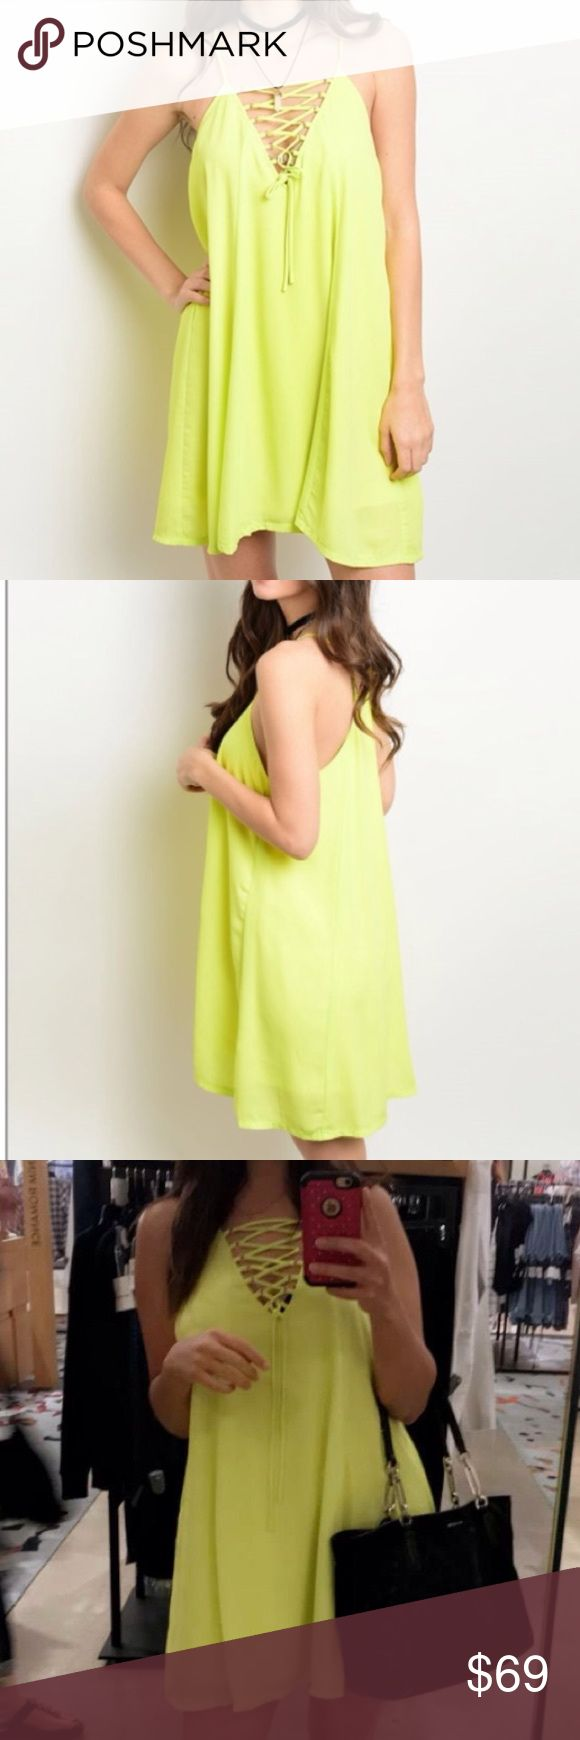 Neon Yellow Lace Up Dress Be bold in this bright yellow dress from WILA.  Trendy lace up caged style with racerback is perfect for Spring/Summer.  Looks great paired with black or nude wedges/sandals.  Dress is lined. Polyester. Items usually ship same or next day.  Boutique prices are firm. Bundle to save. MSRP $75. WILA Dresses